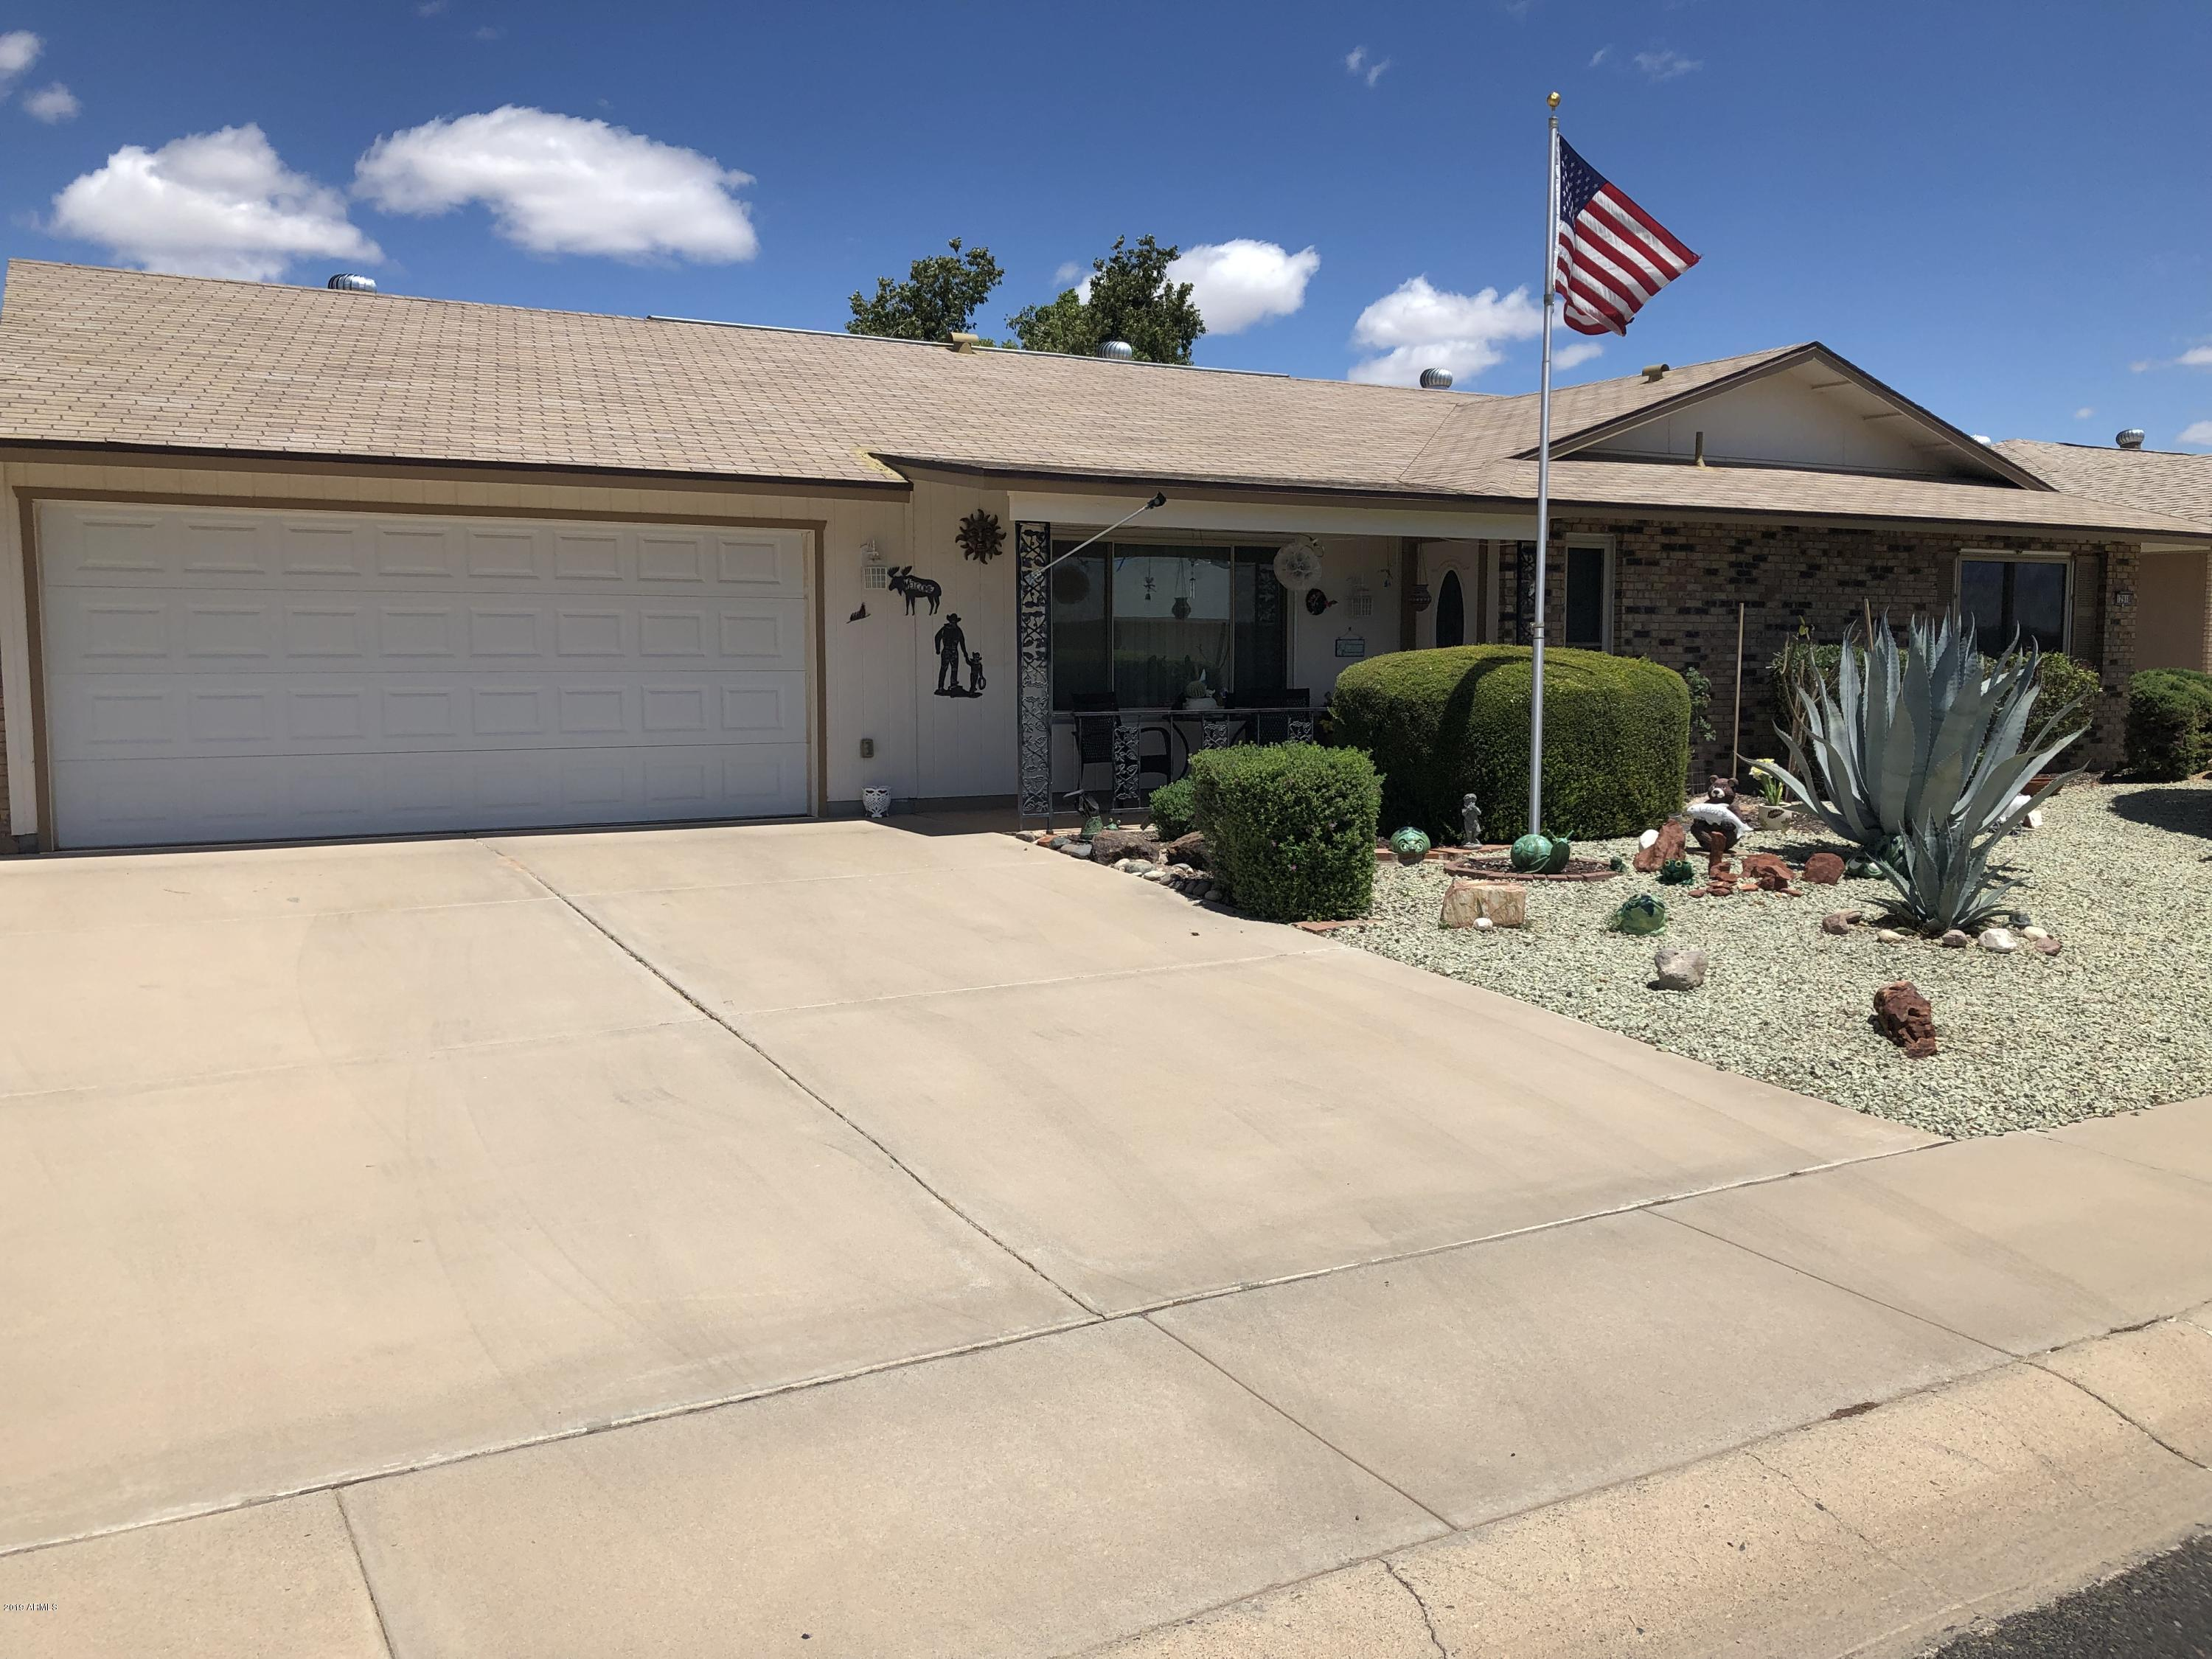 Superb 12918 W Limewood Drive Sun City West Az 85375 Sold Listing Mls 5931708 Better Homes And Gardens Bloomtree Realty Home Remodeling Inspirations Cosmcuboardxyz